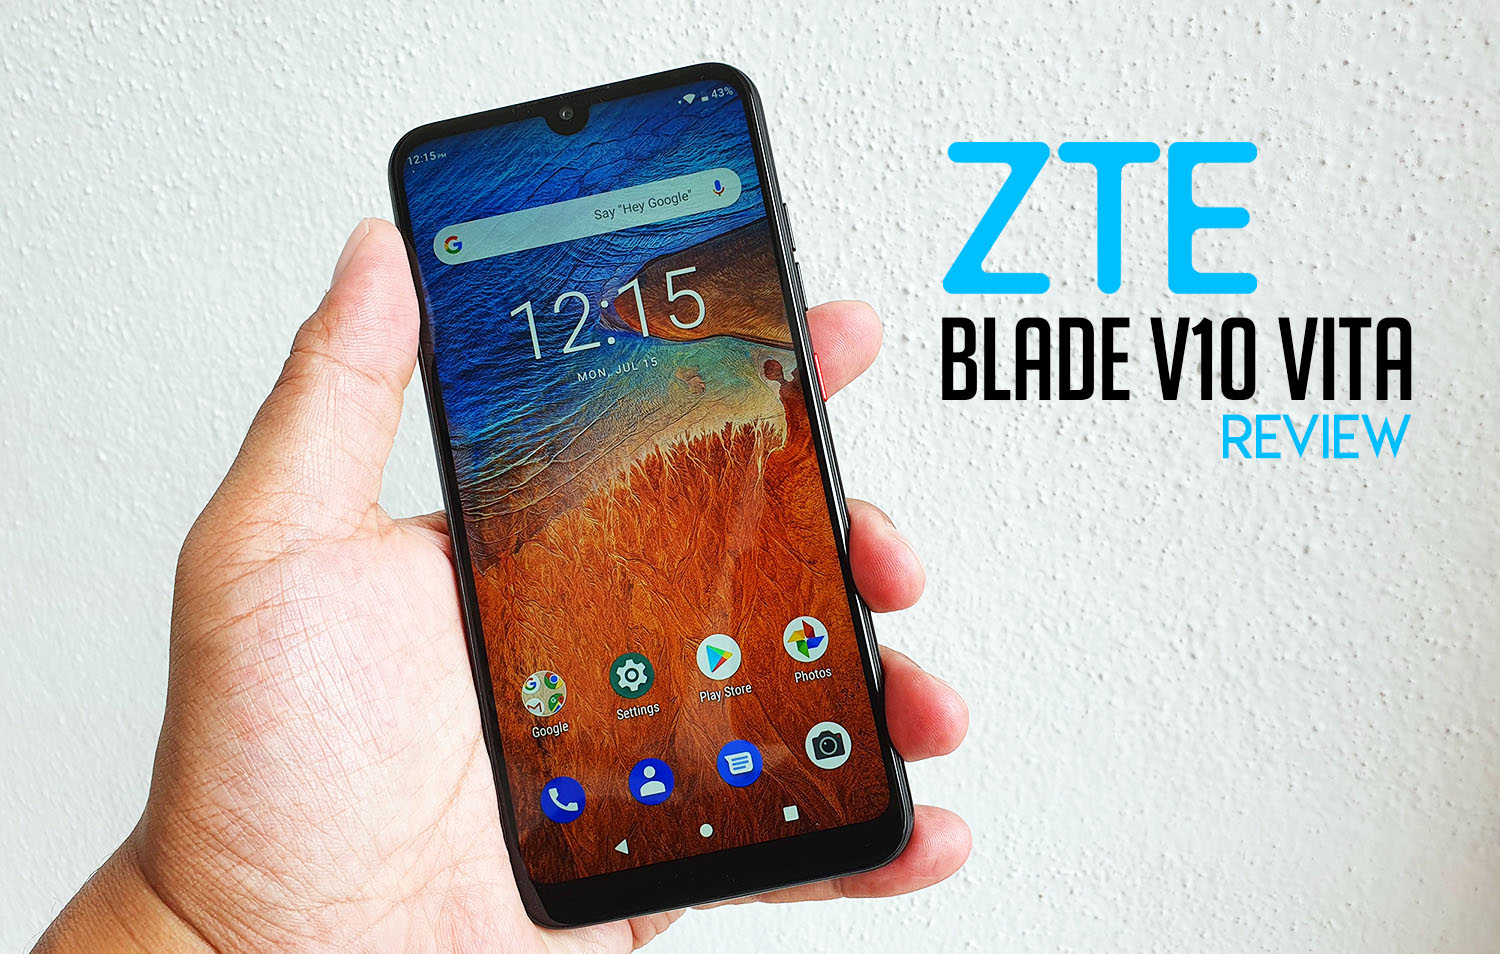 How to Recover Data from ZTE Blade V10/V10 vita?